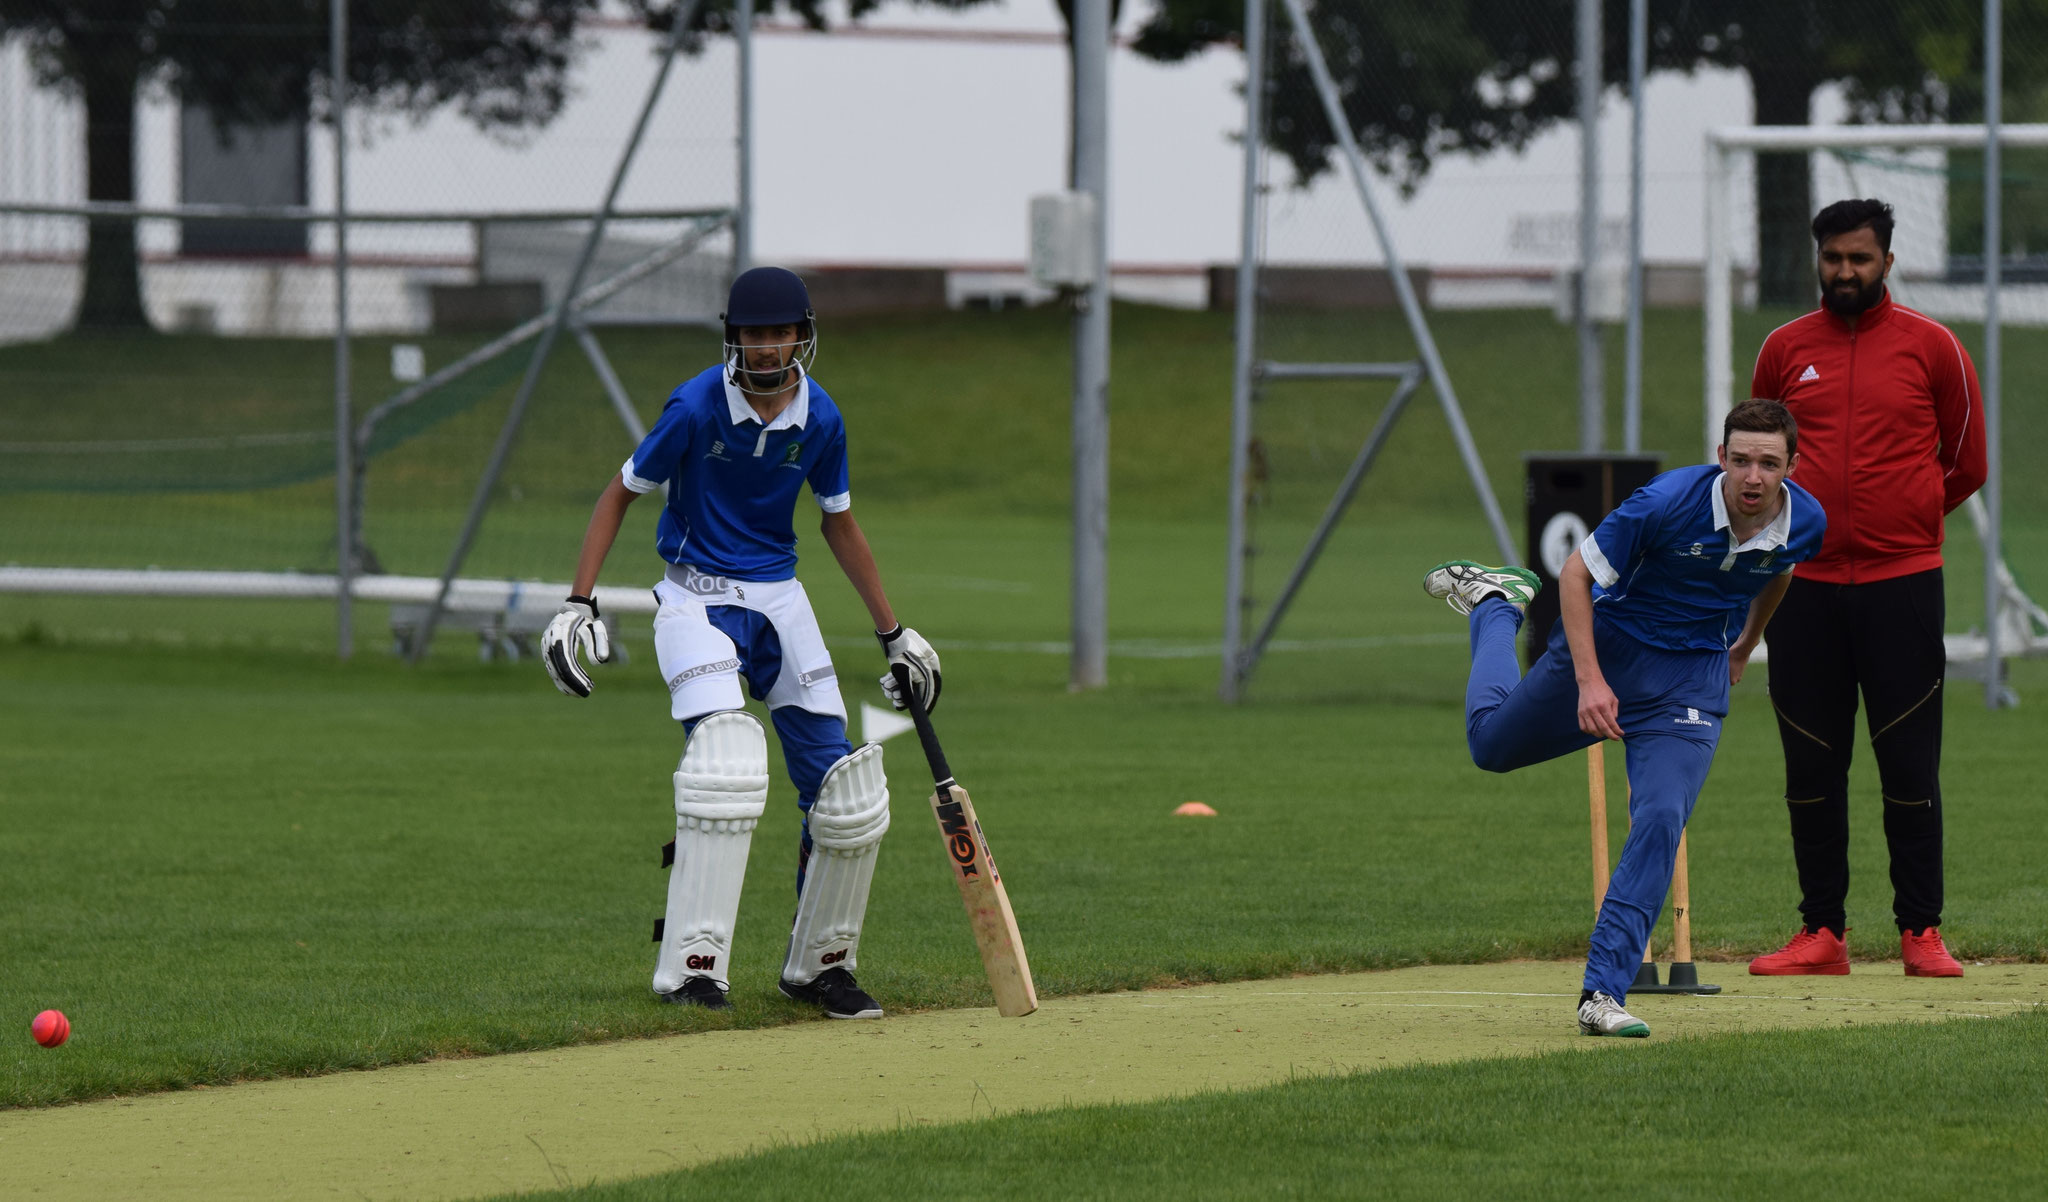 He gave little opportunity to the batsmen. Suleman was not out on 7 and the 1st XI had won by 99 runs but the 2nd XI need to get matches under their belts, gain experience and improve match by match.